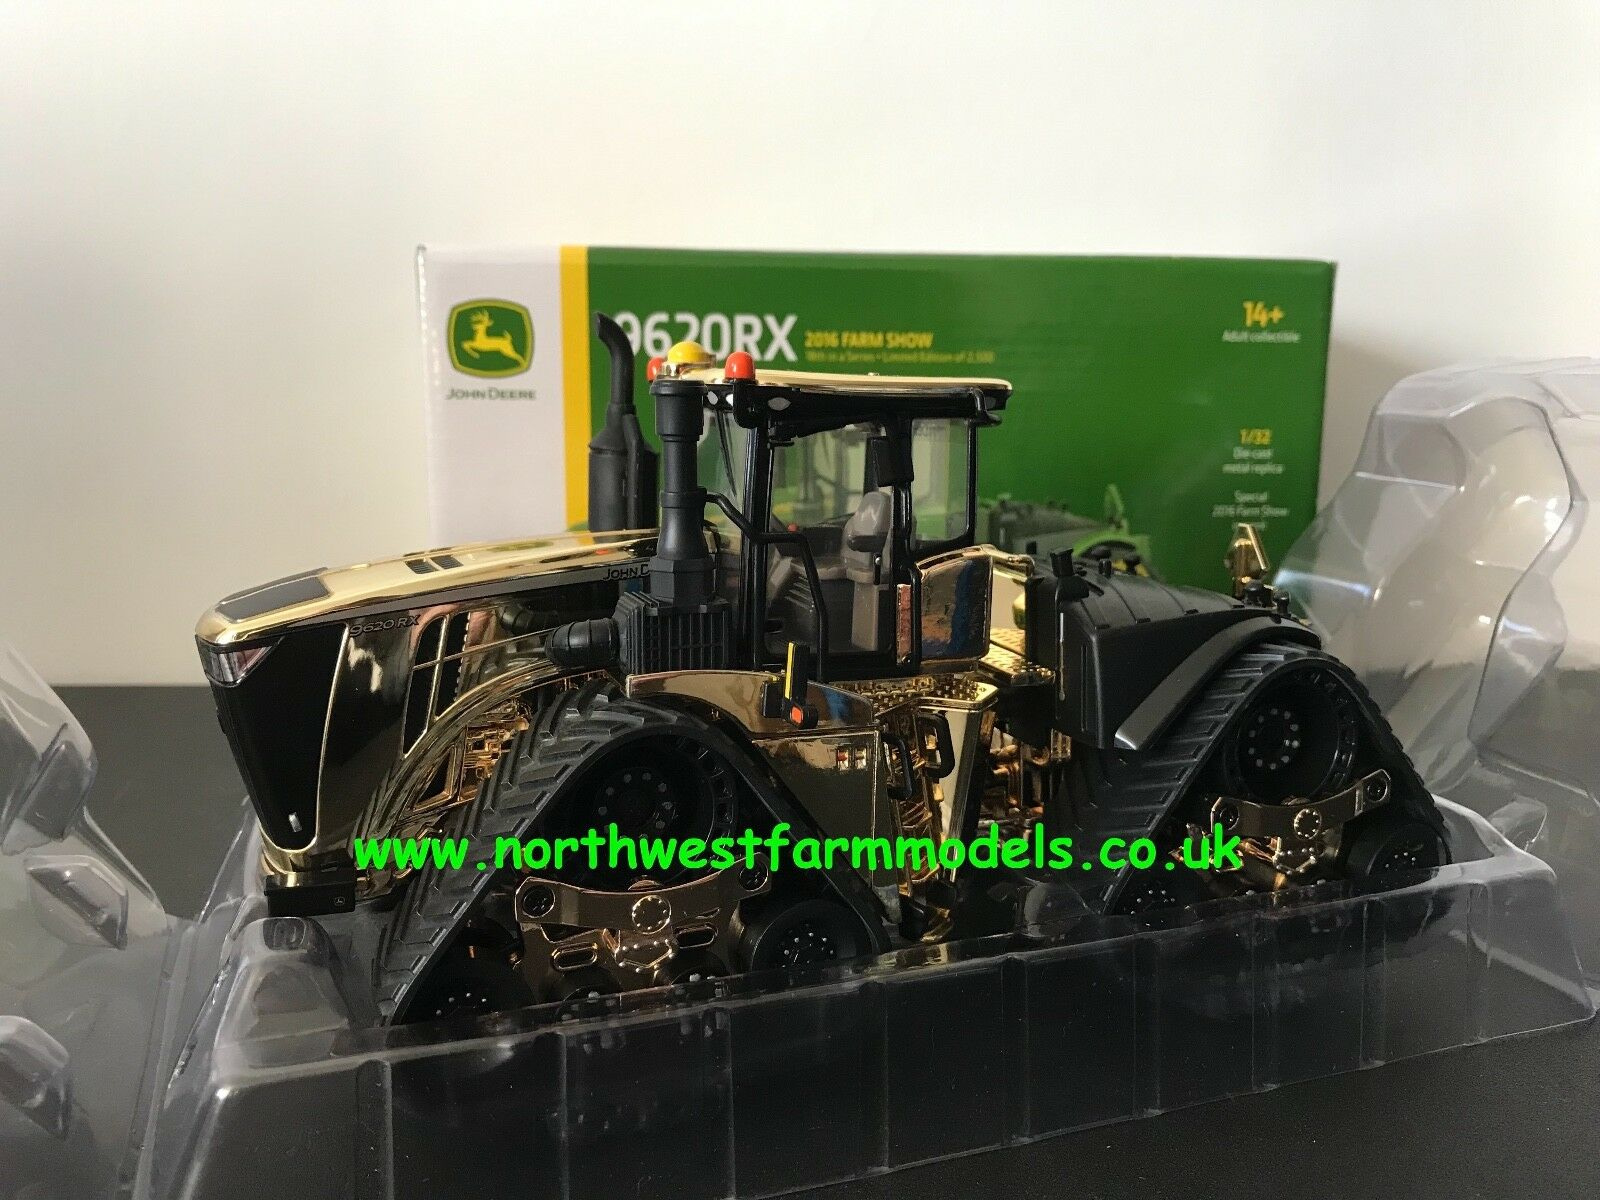 ERTL BRITAINS FARM 1 32 SCALE JOHN DEERE 9620RX Gold 4WD TRACKED IN STOCK